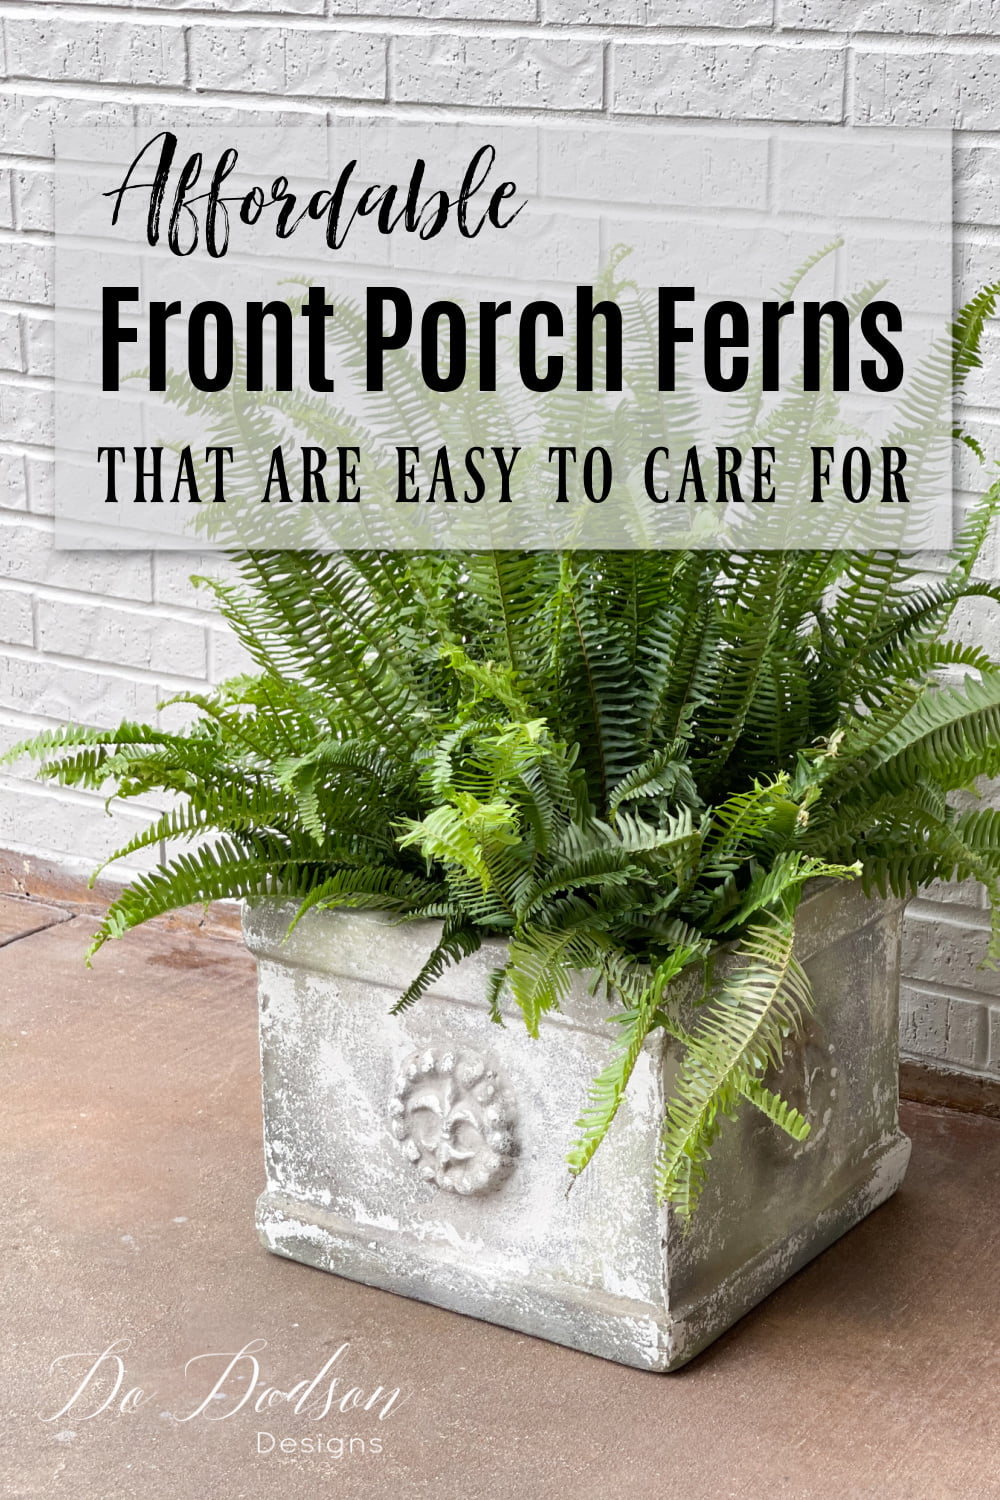 Affordable Front Porch Ferns That Are Easy To Care For